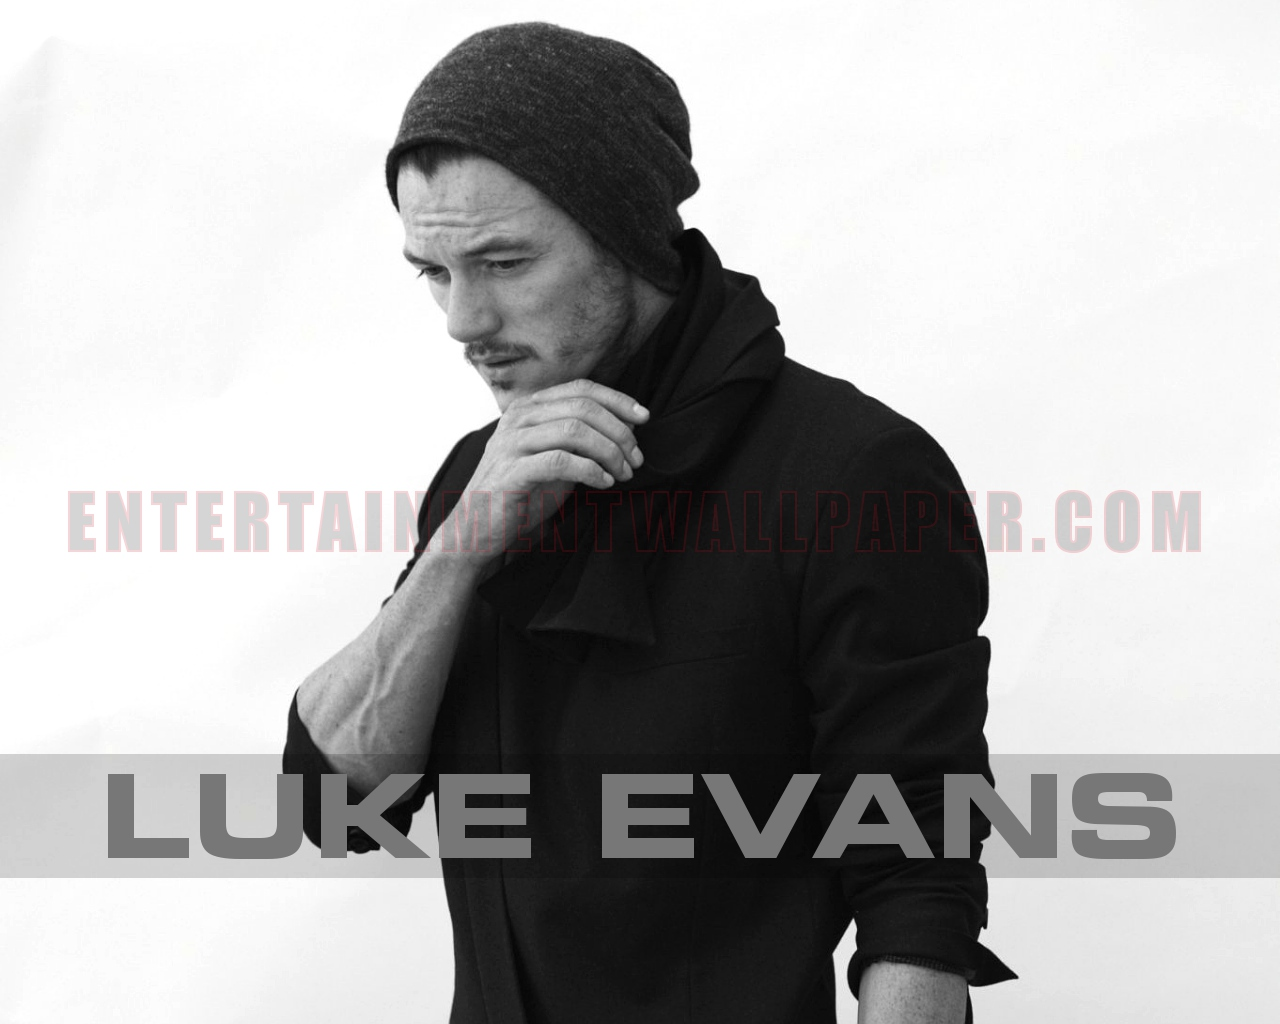 luke evans wallpaper 30039244 size 1280x1024 more luke evans wallpaper 1280x1024